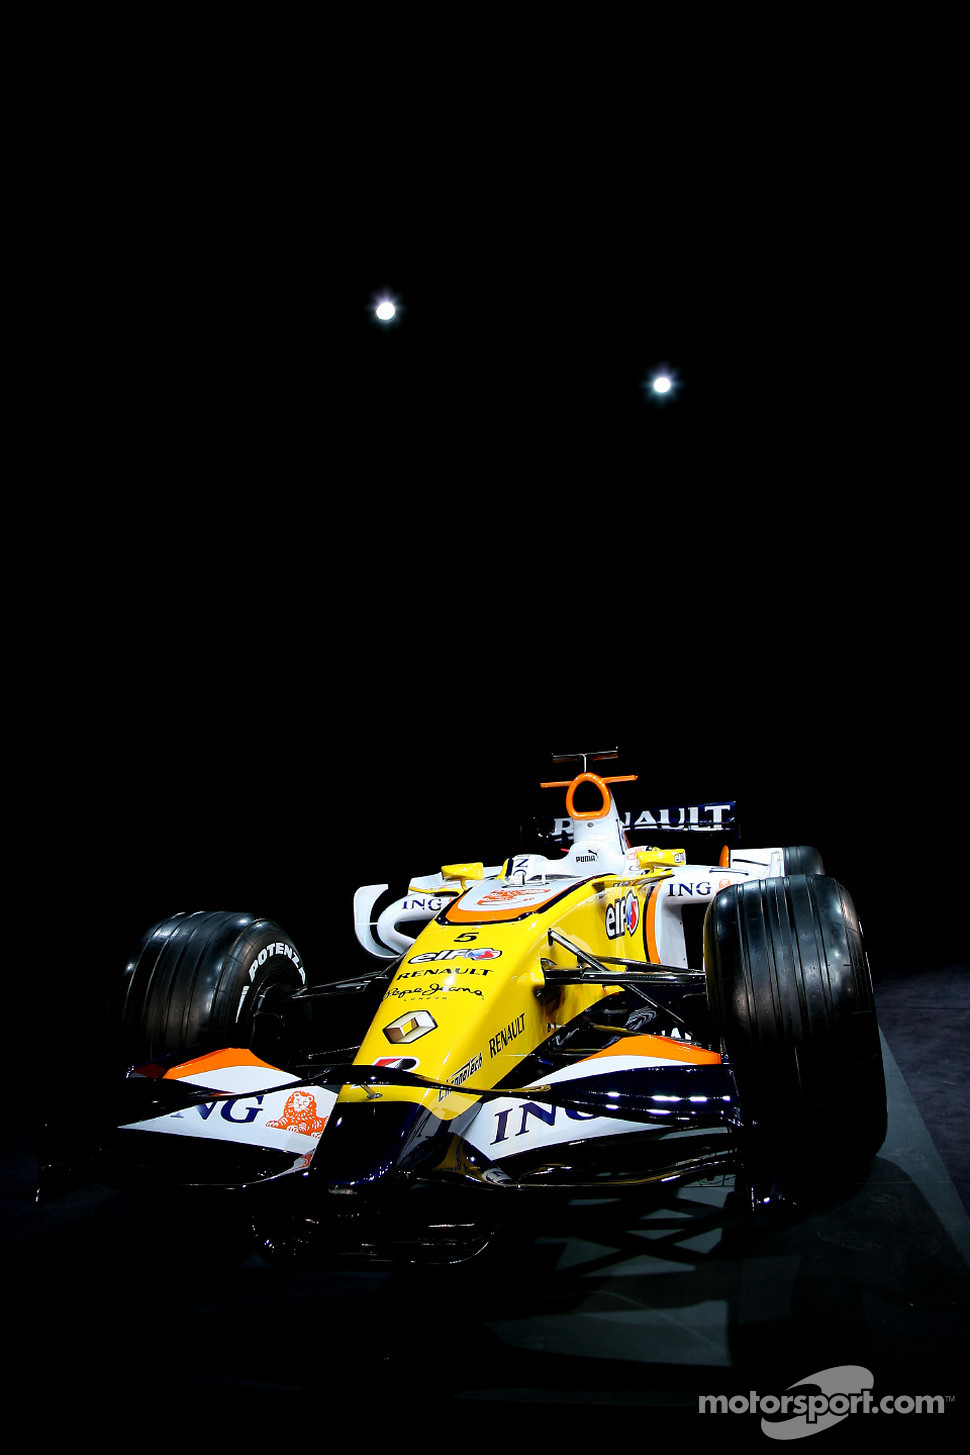 The Renault F1 R28